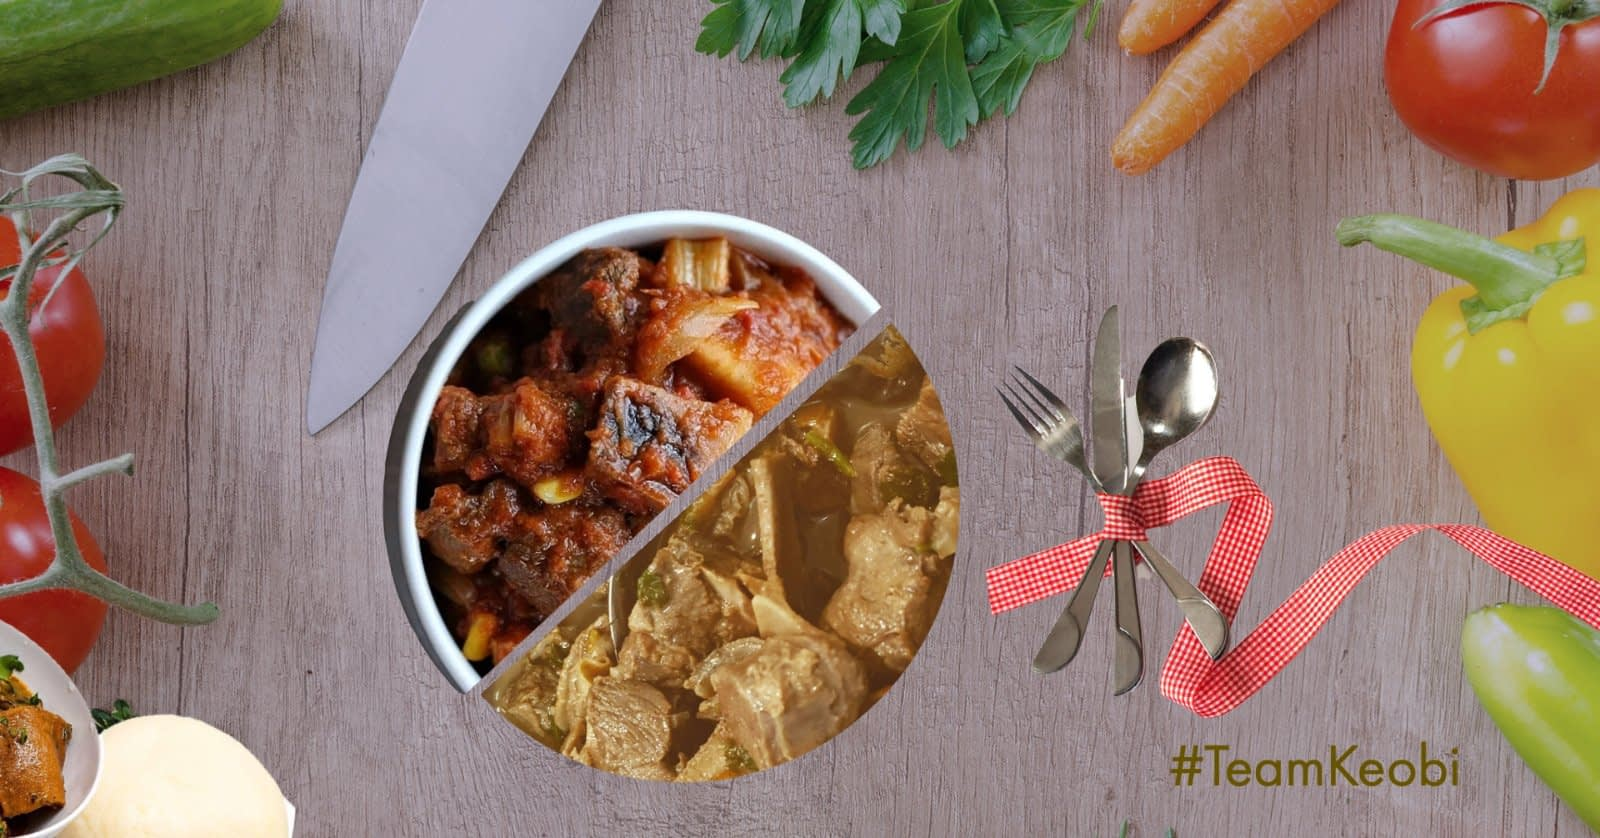 Goat Meat Soup | Healthier Option to Red Meat Soup